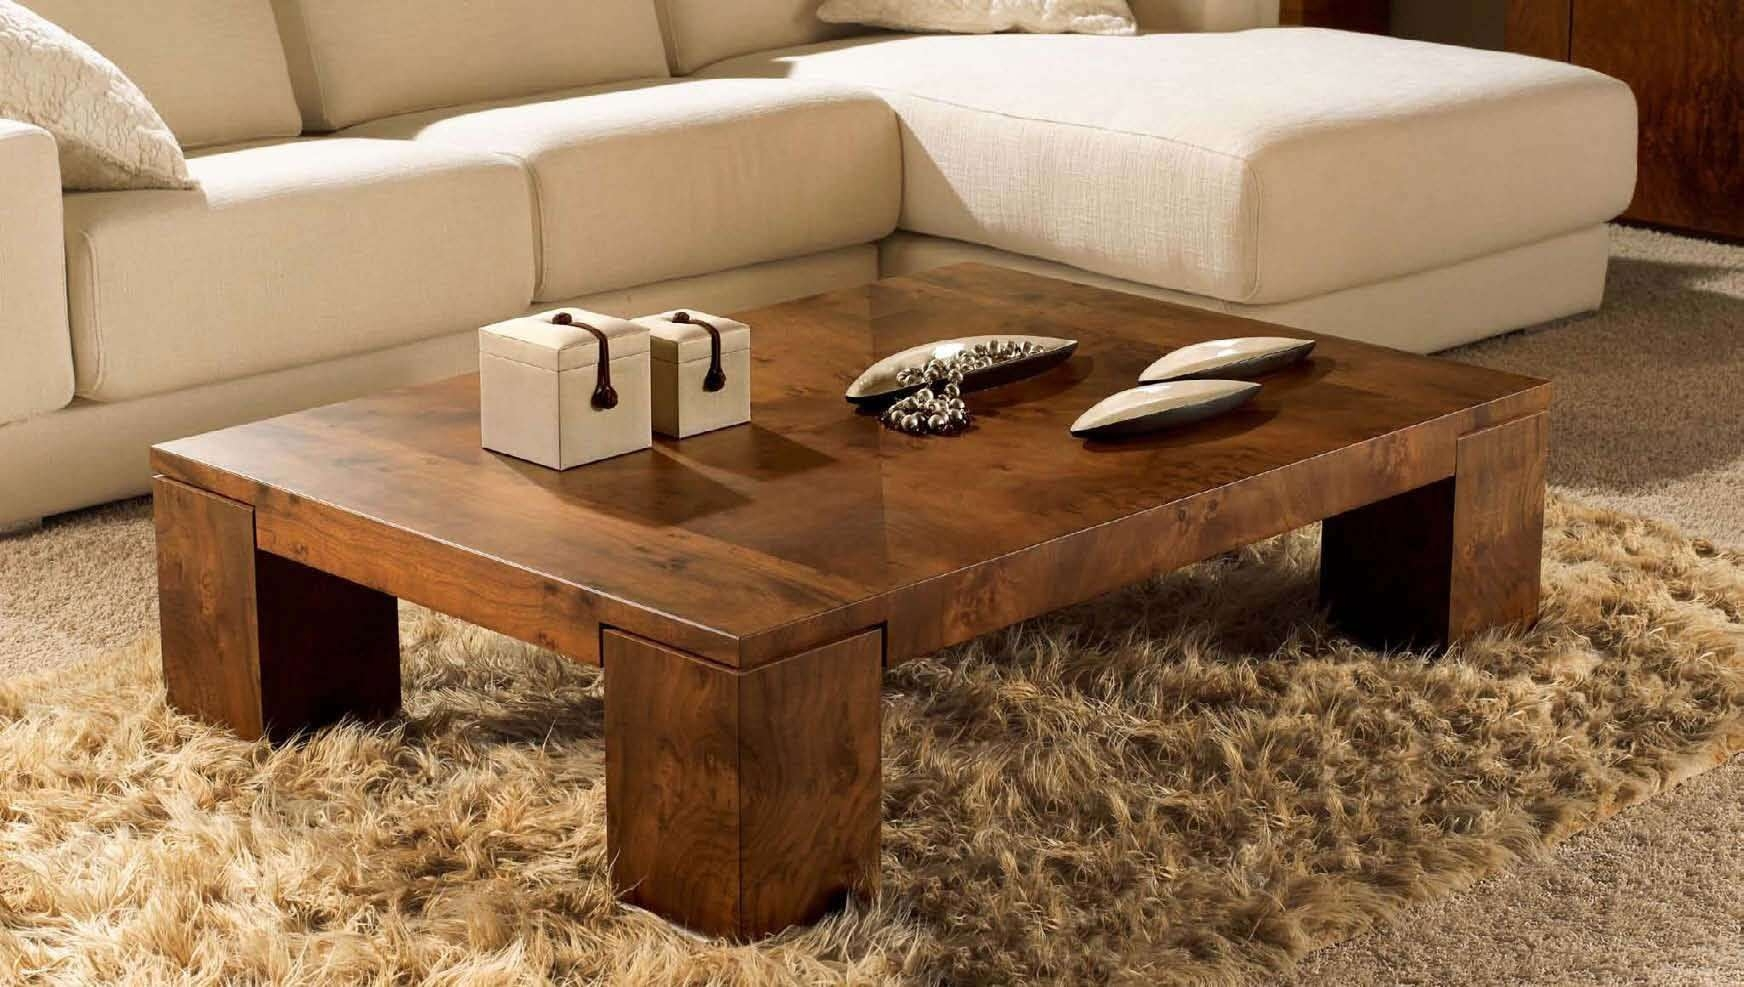 Fashionable Big Coffee Tables Throughout Big Floor Flower Vase Idea Big Vase Decor Set Coffee Tables For (View 11 of 20)